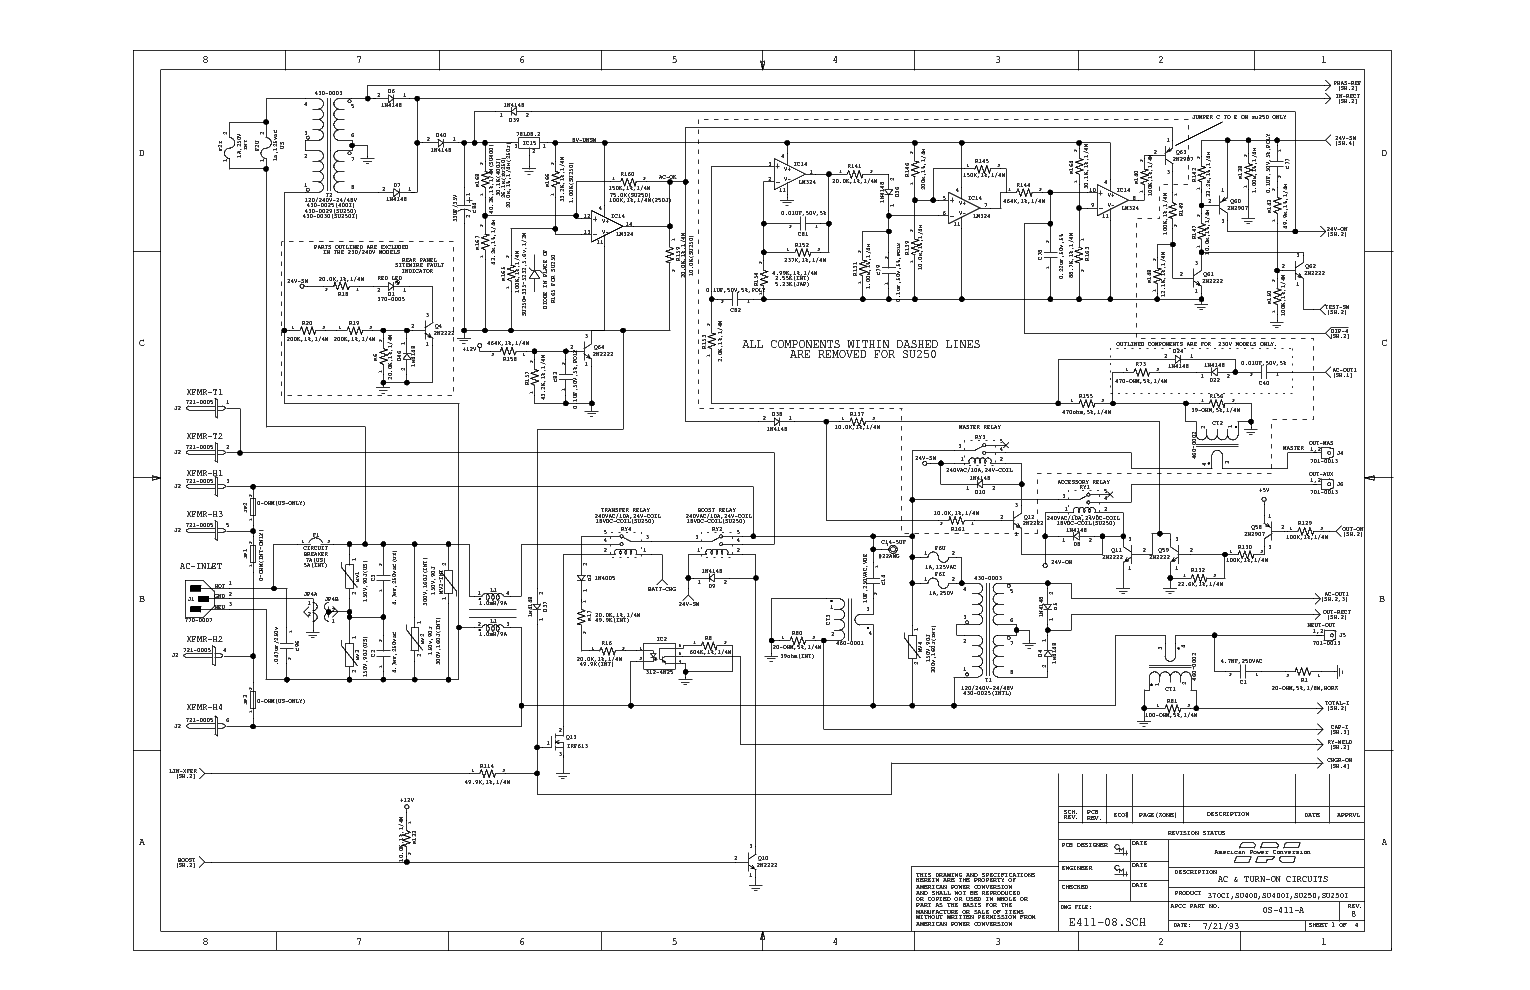 Apc Wiring Diagram Browse Data Ups Schematic Circuit Blogs Battery Back